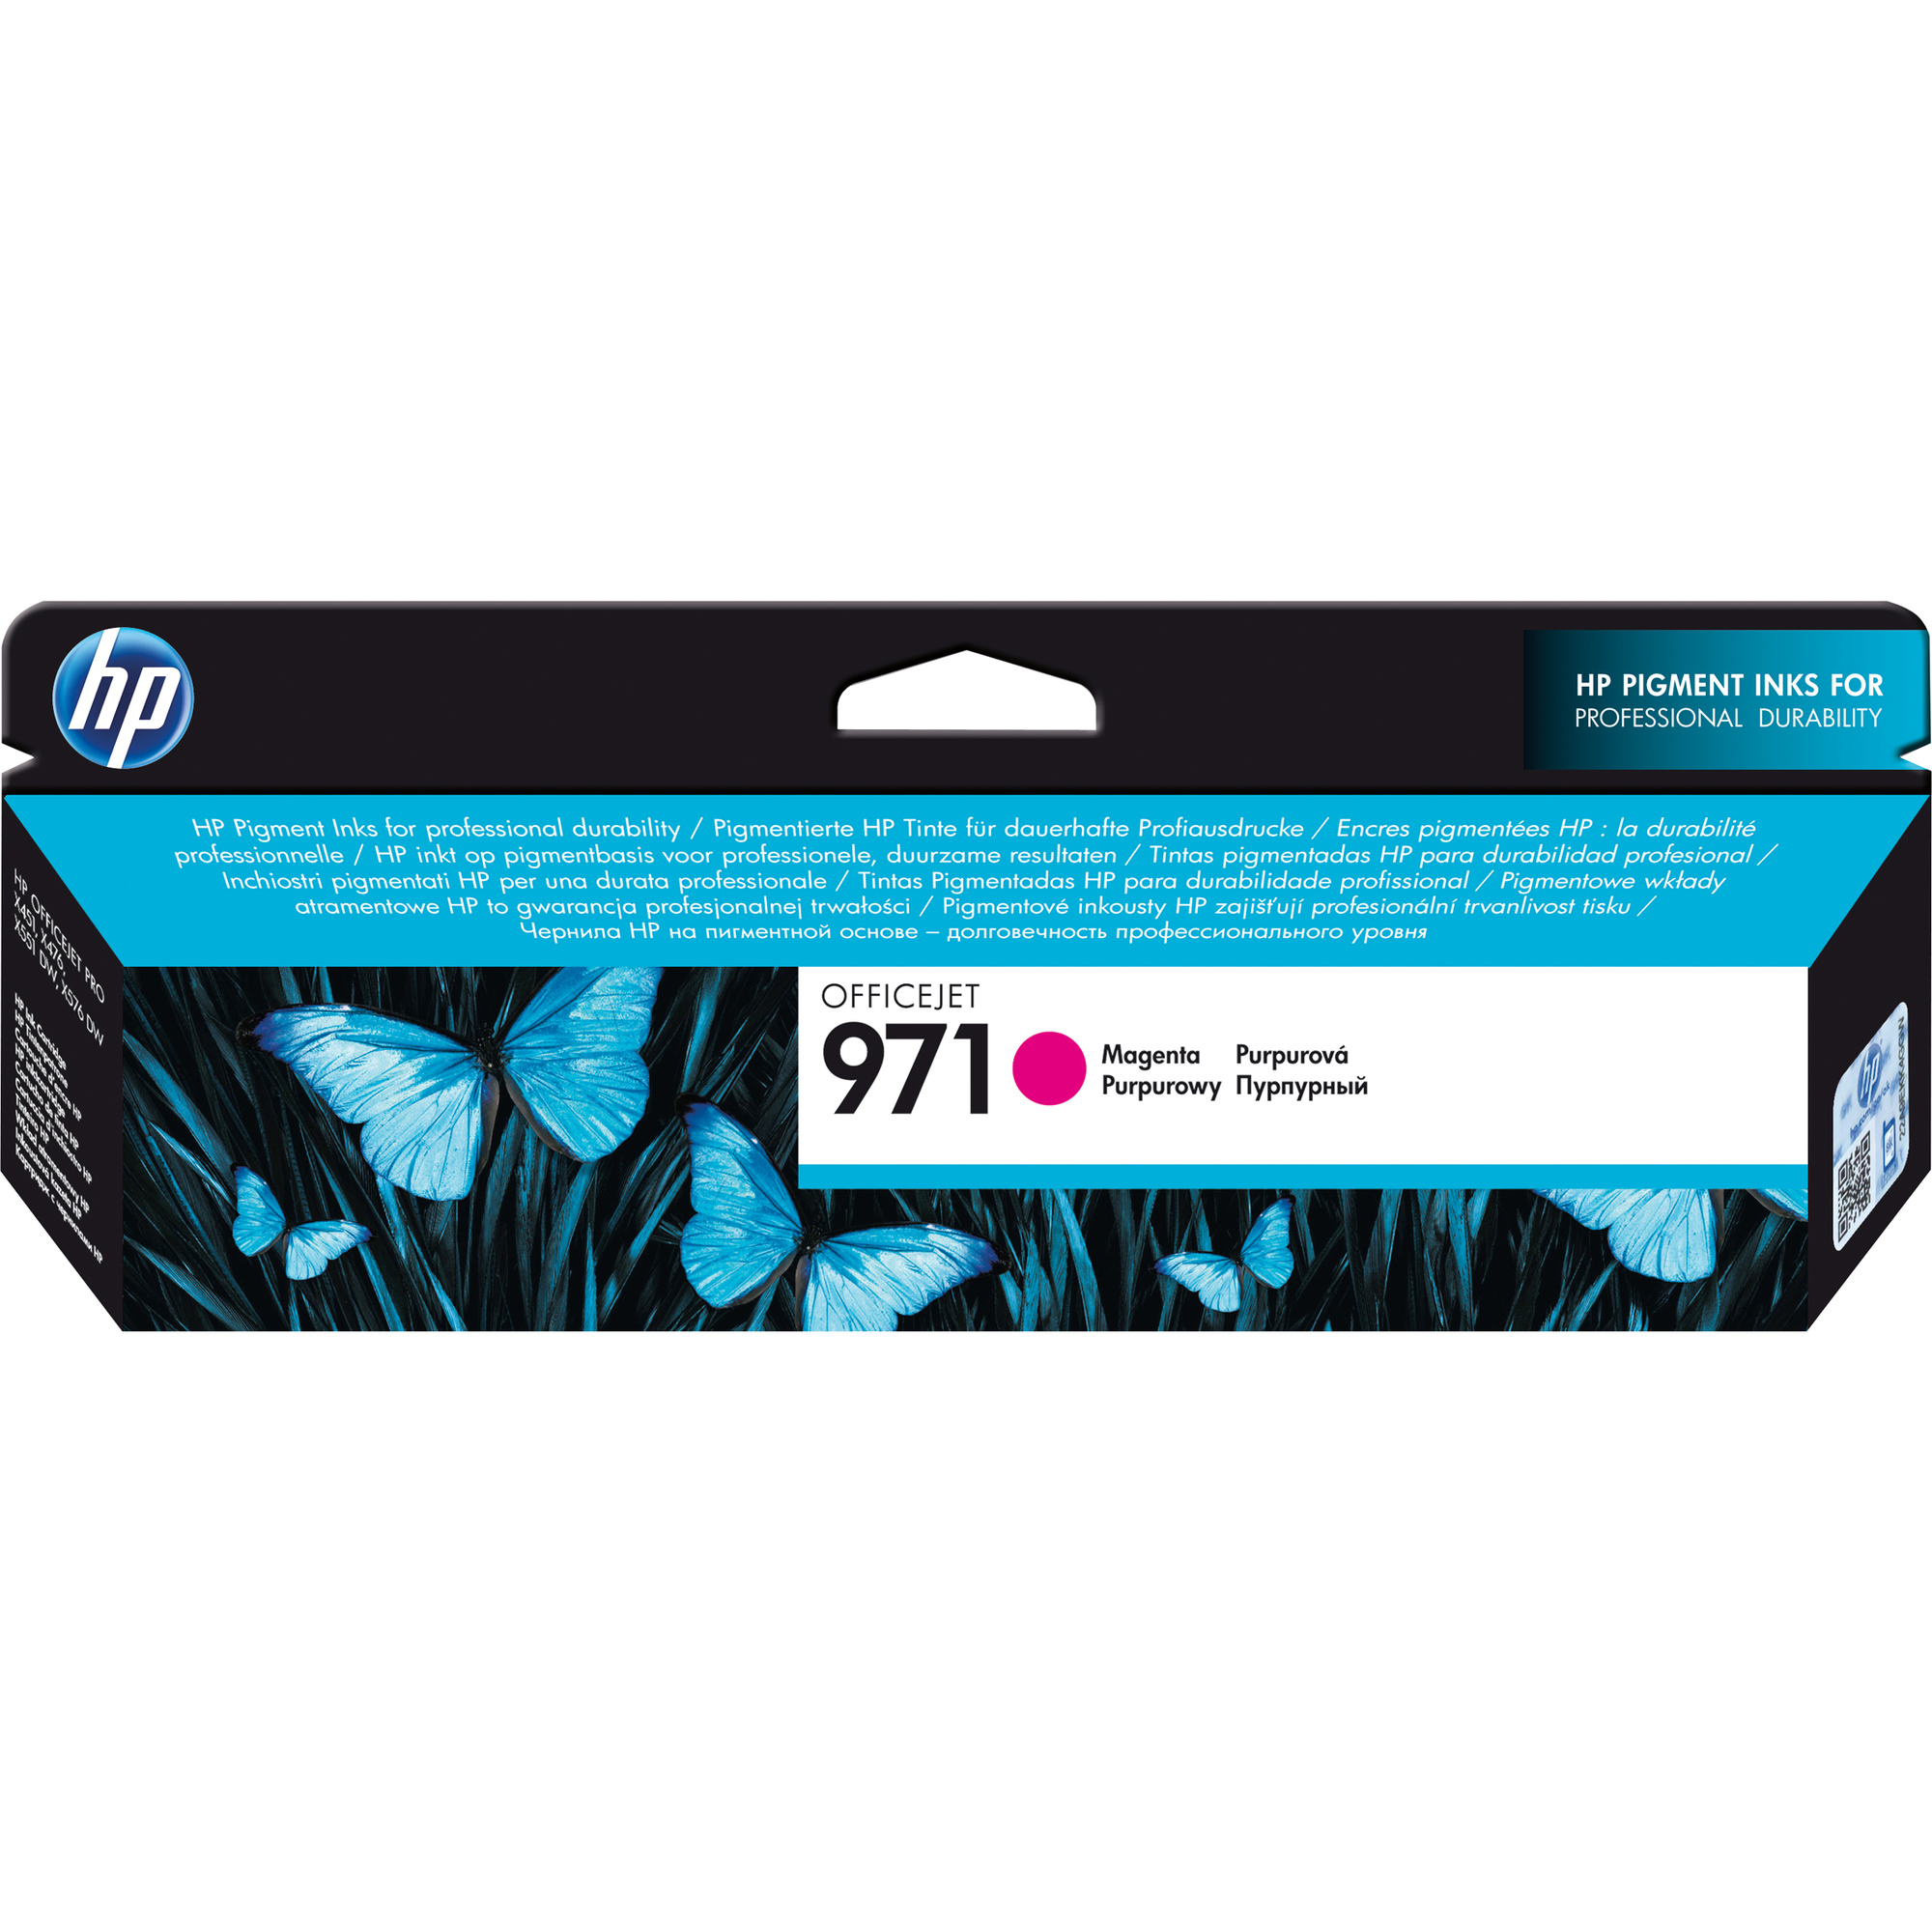 HP 971 Ink Cartridge - Magenta